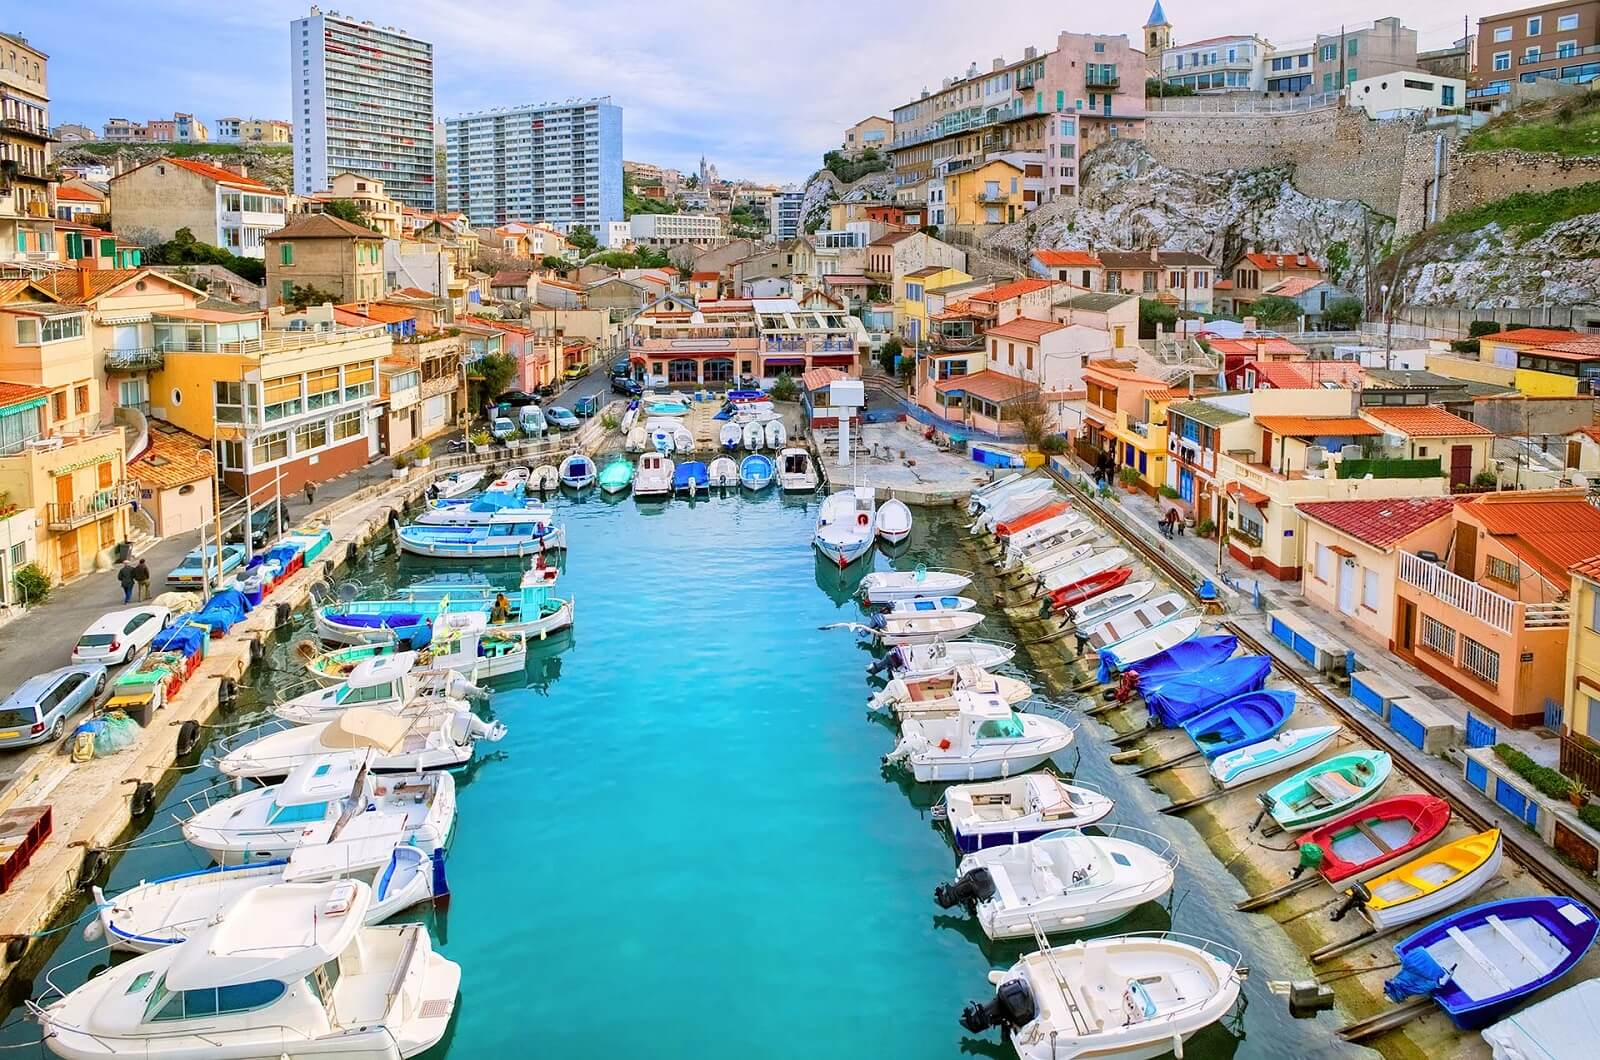 MARSEILLE ONCE CAPITAL OF DRUGS, TODAY A EUROPEAN CAPITAL OF CULTURE